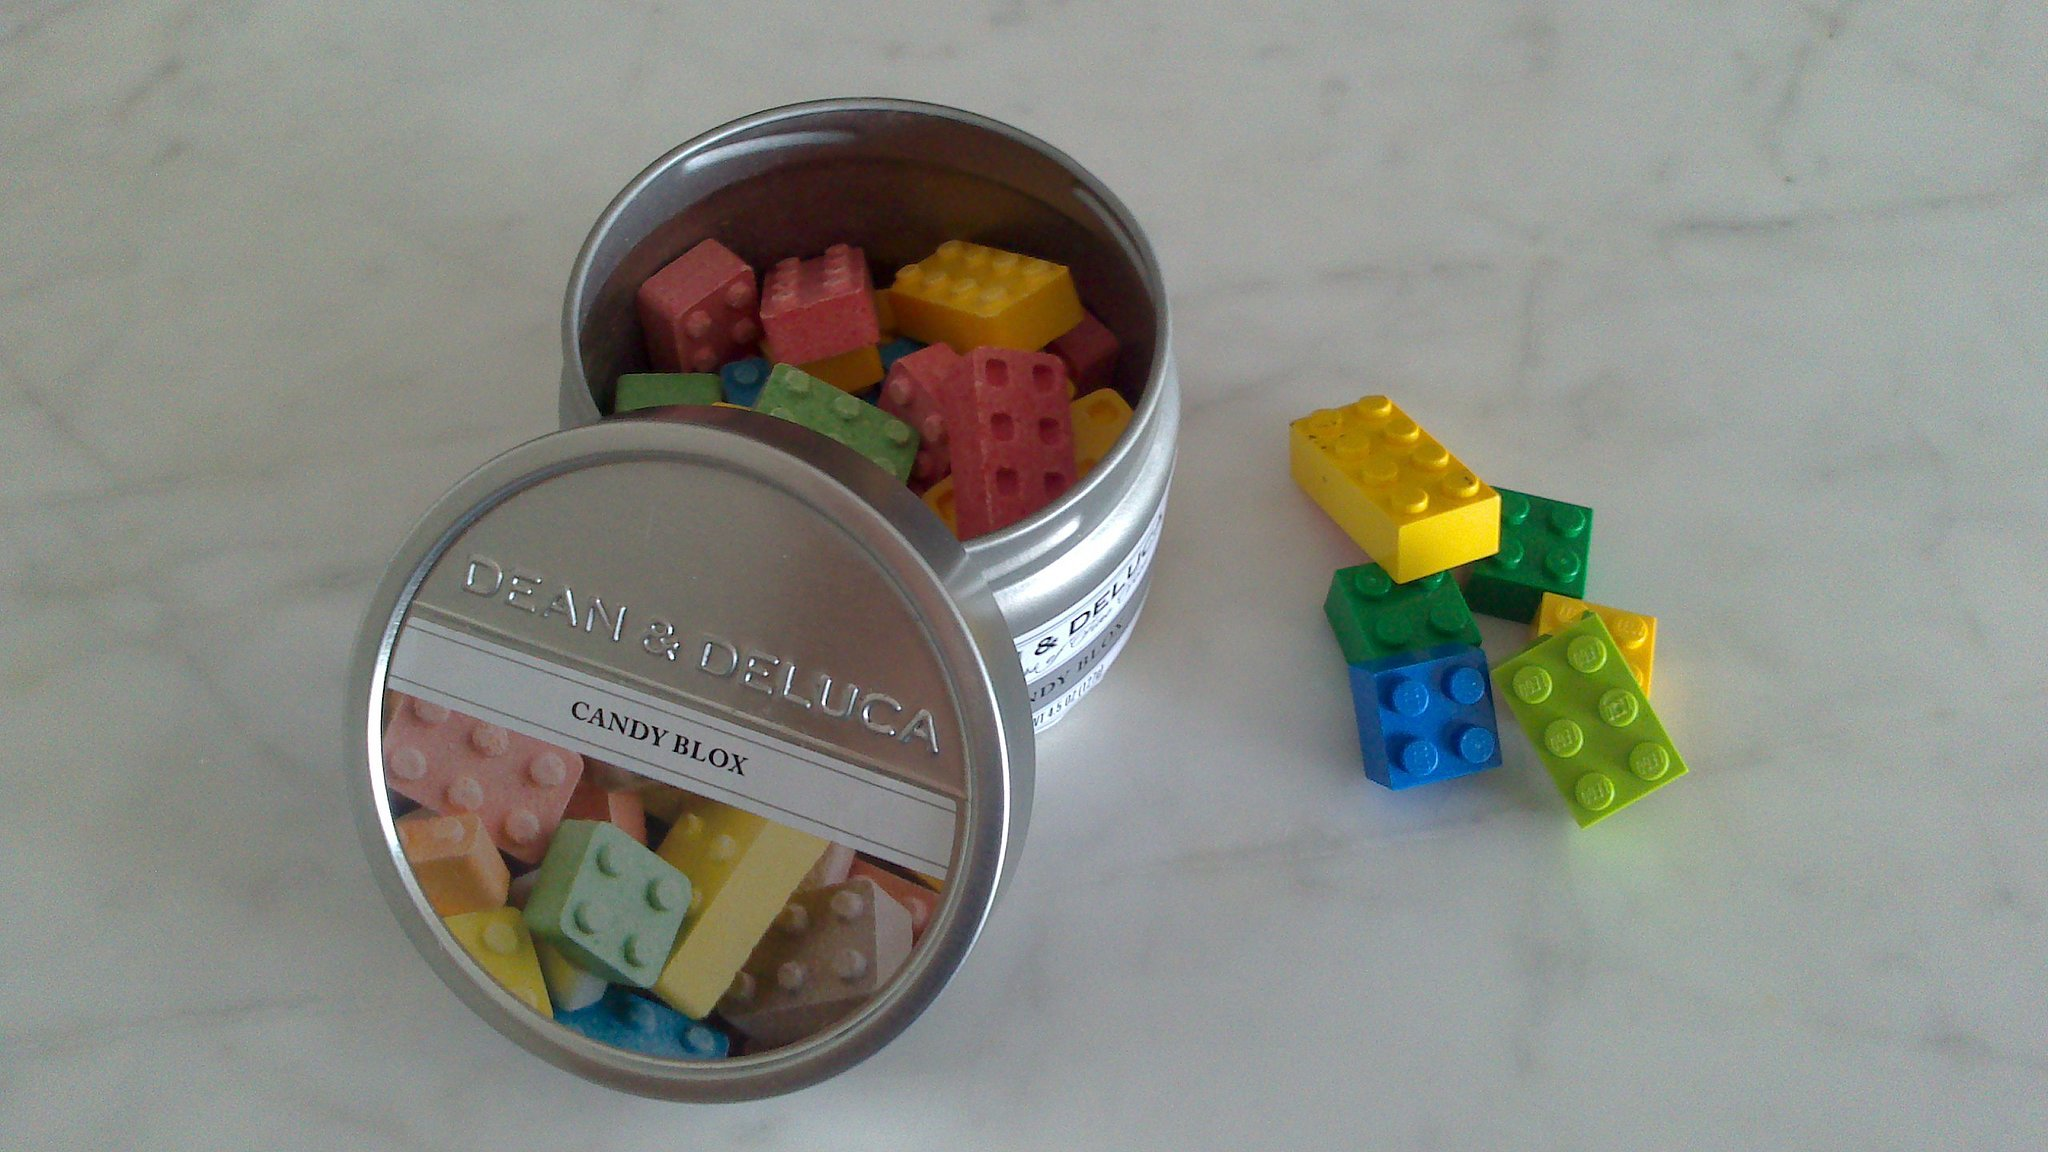 Dust Legos with flour so that they look like candy.  Source:  Reddit user buskey via Imgur